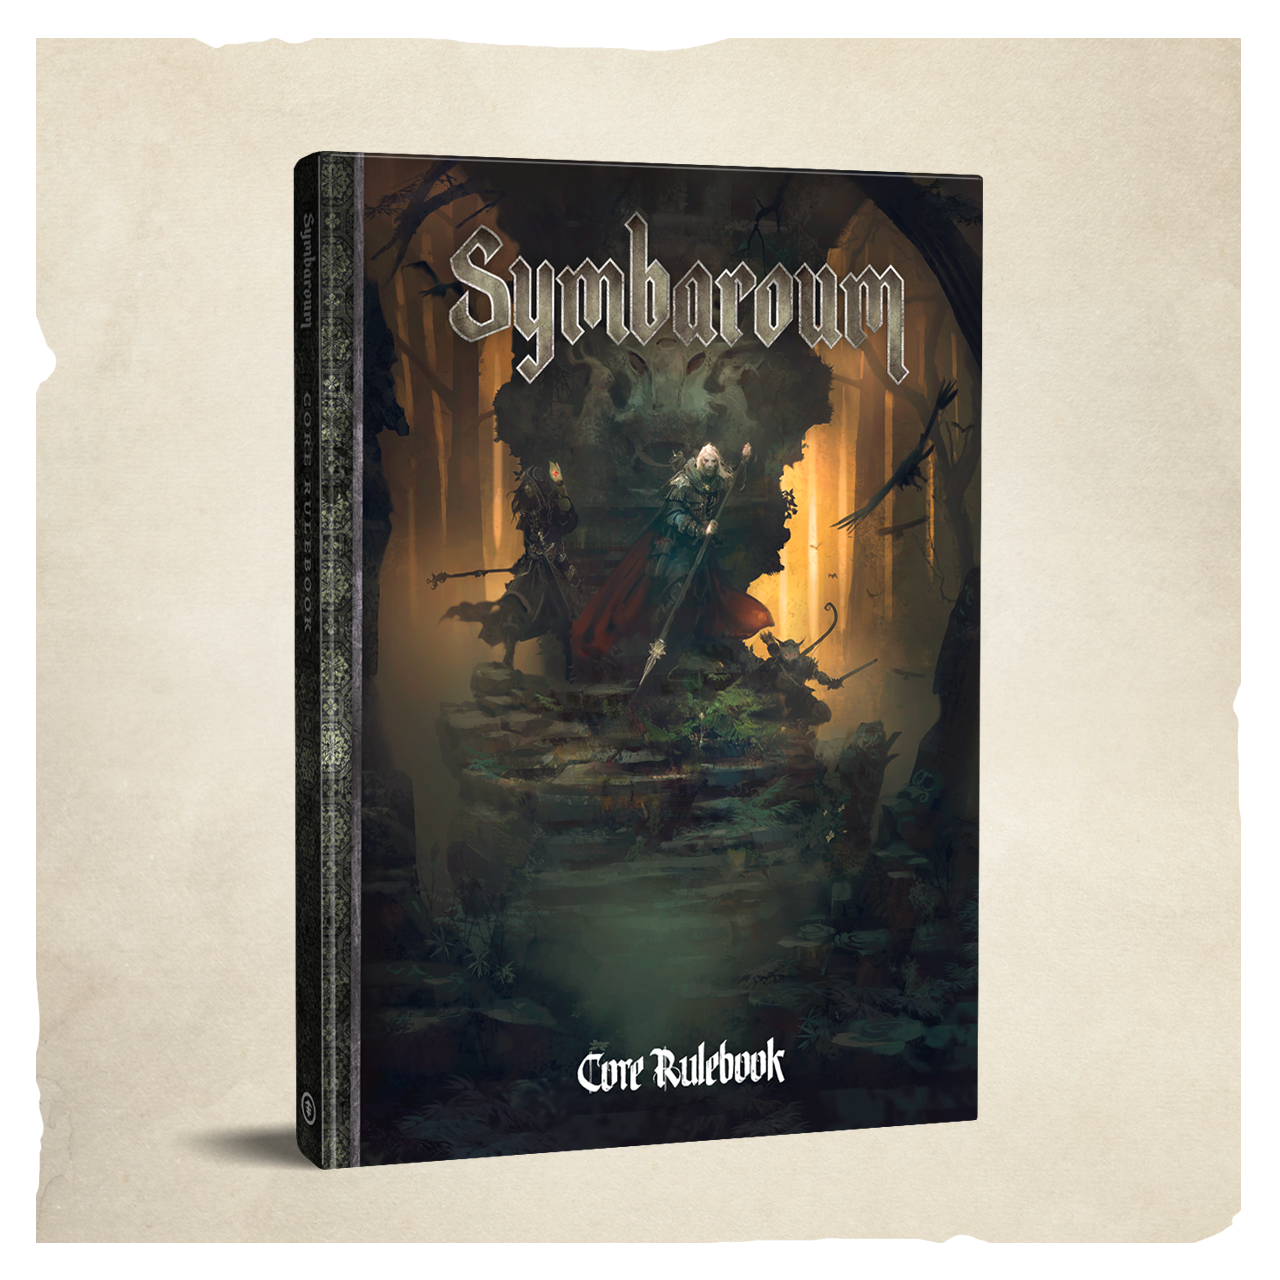 SYMBAROUM - CORE RULEBOOK